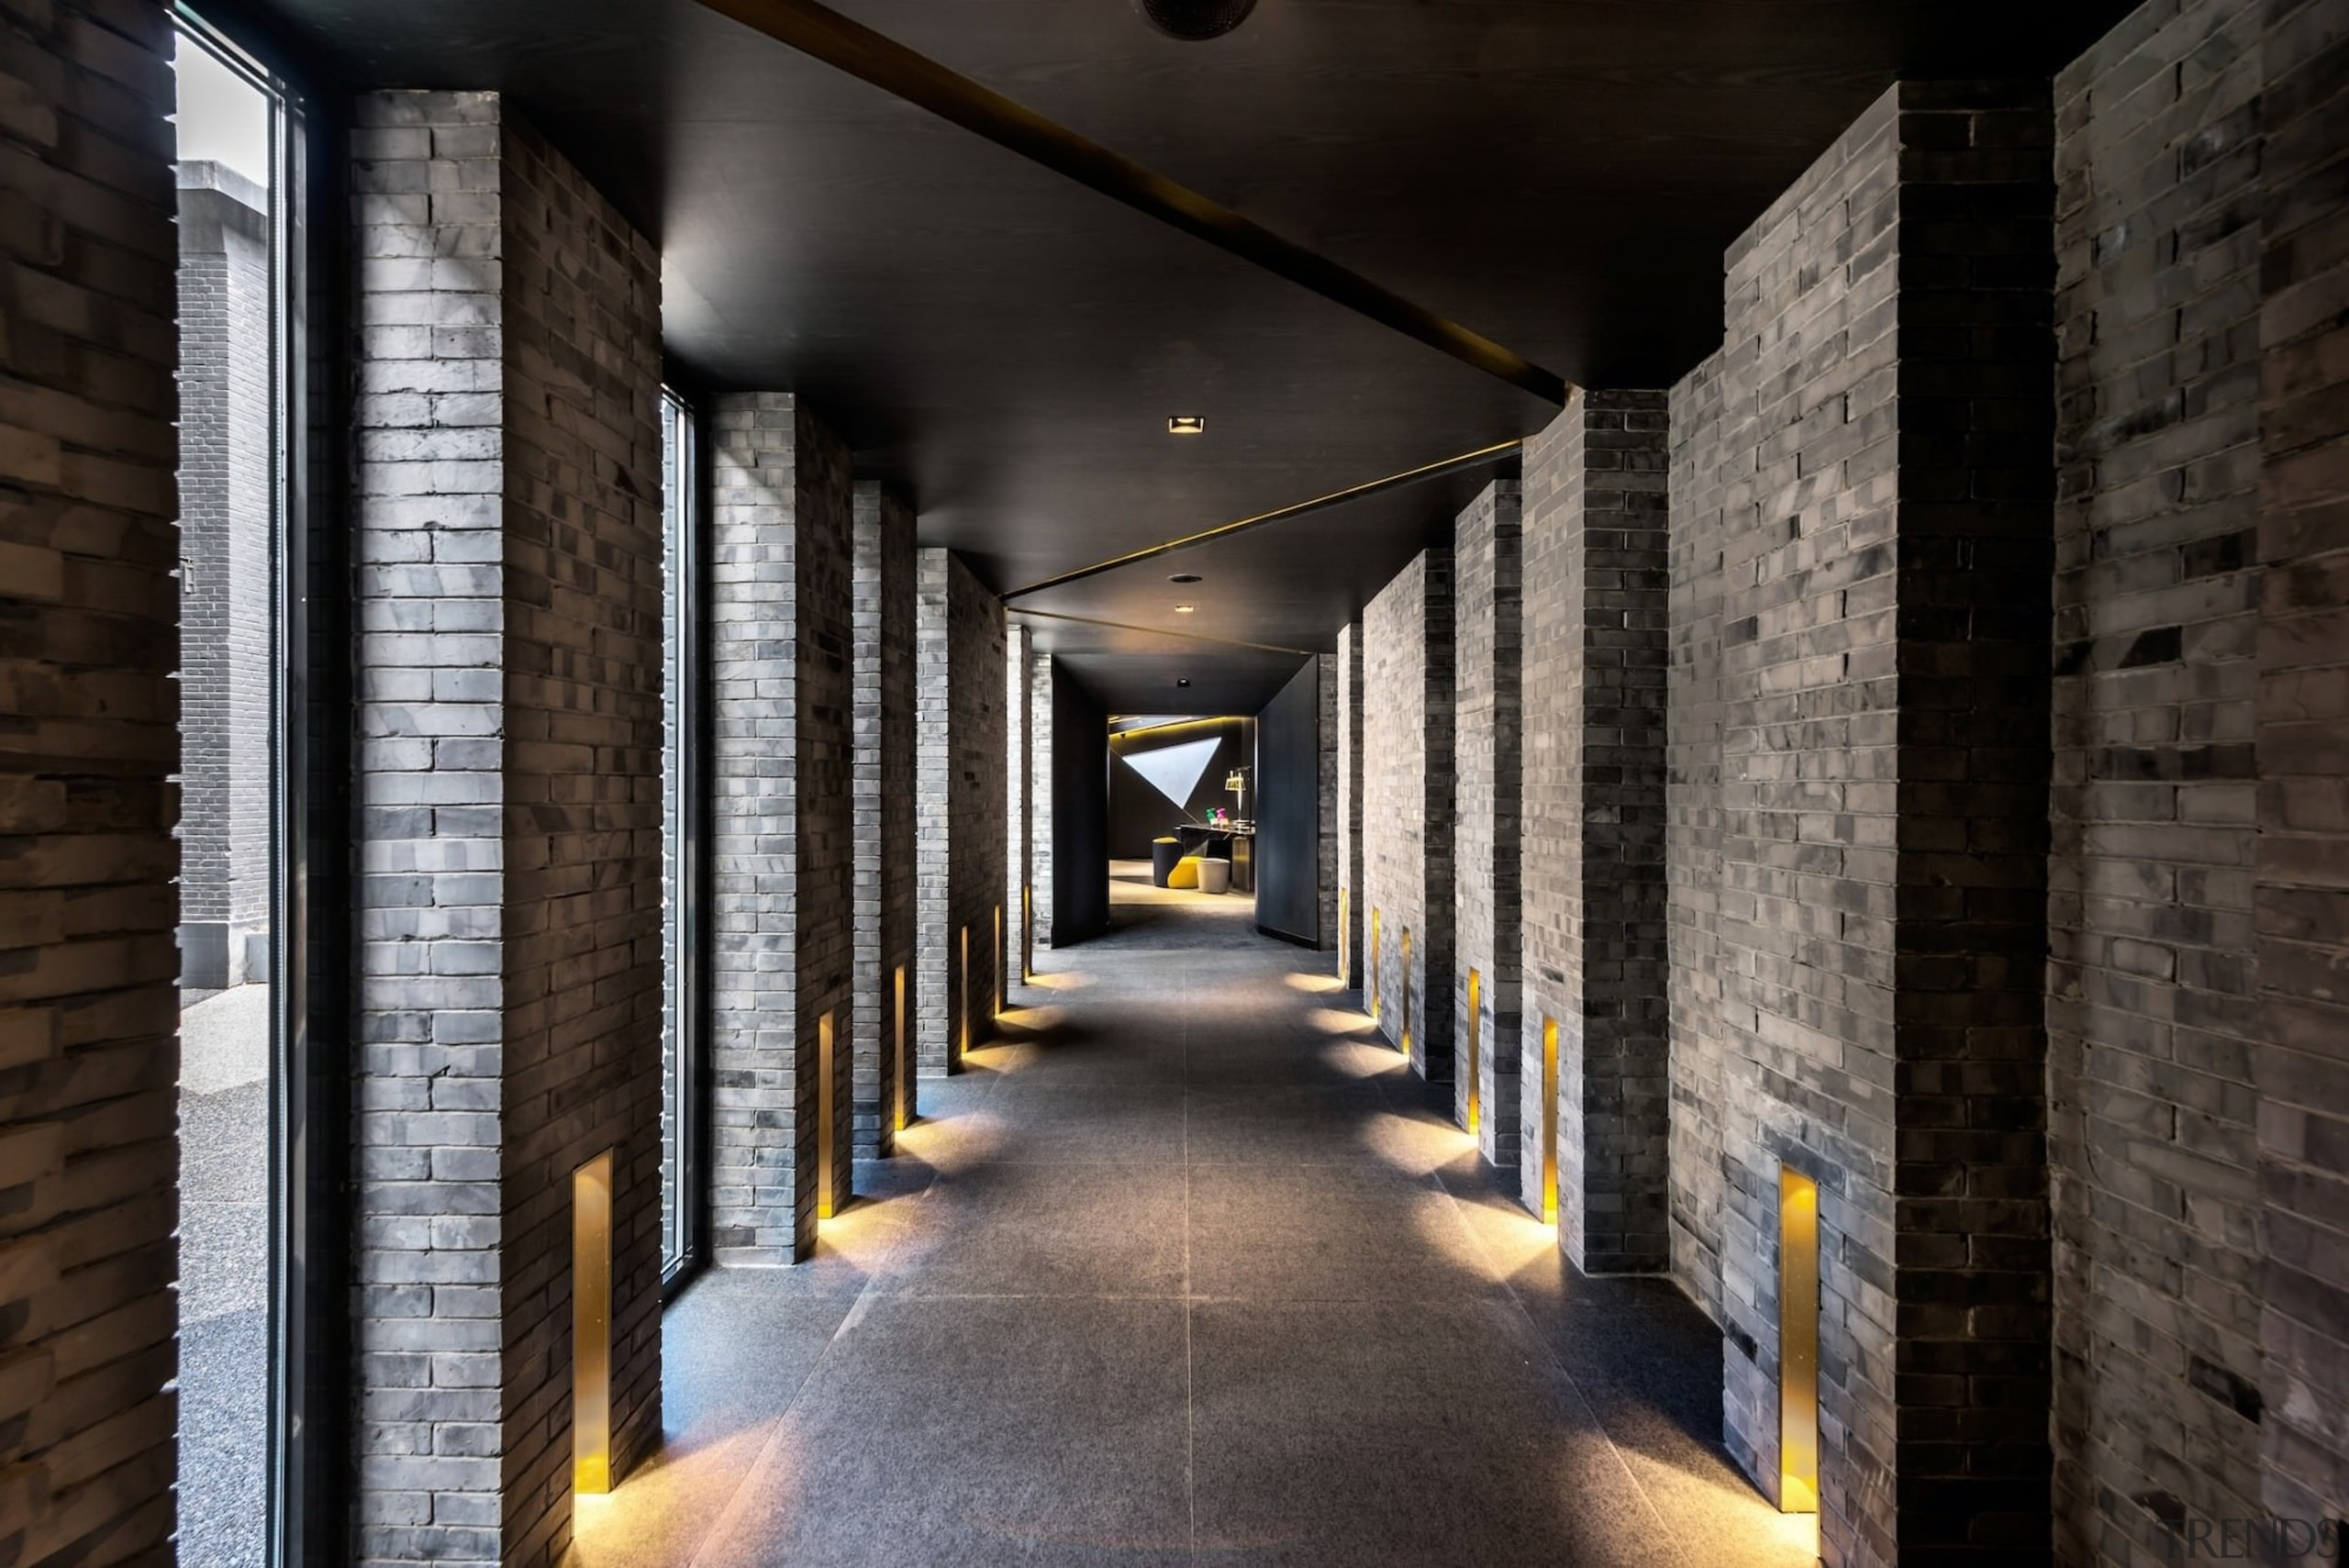 The spaces for lighting in this hallway look architecture, interior design, structure, wood, black, gray